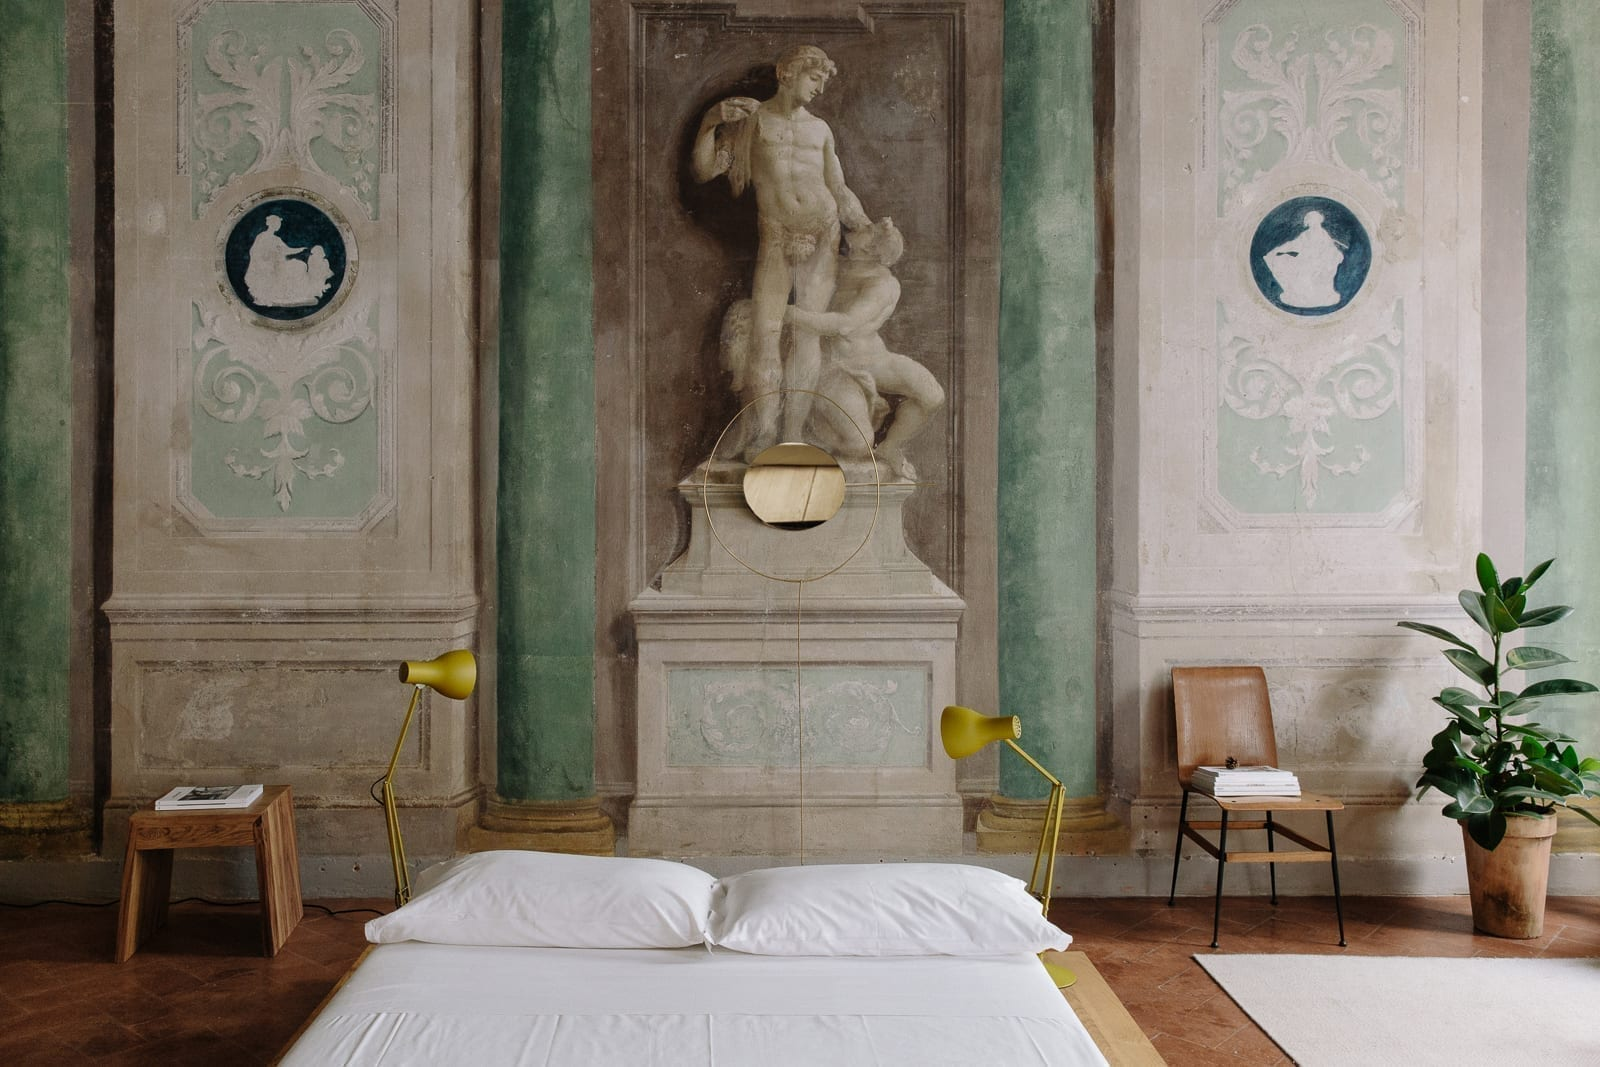 Nest Italy - Design Residency in Florence